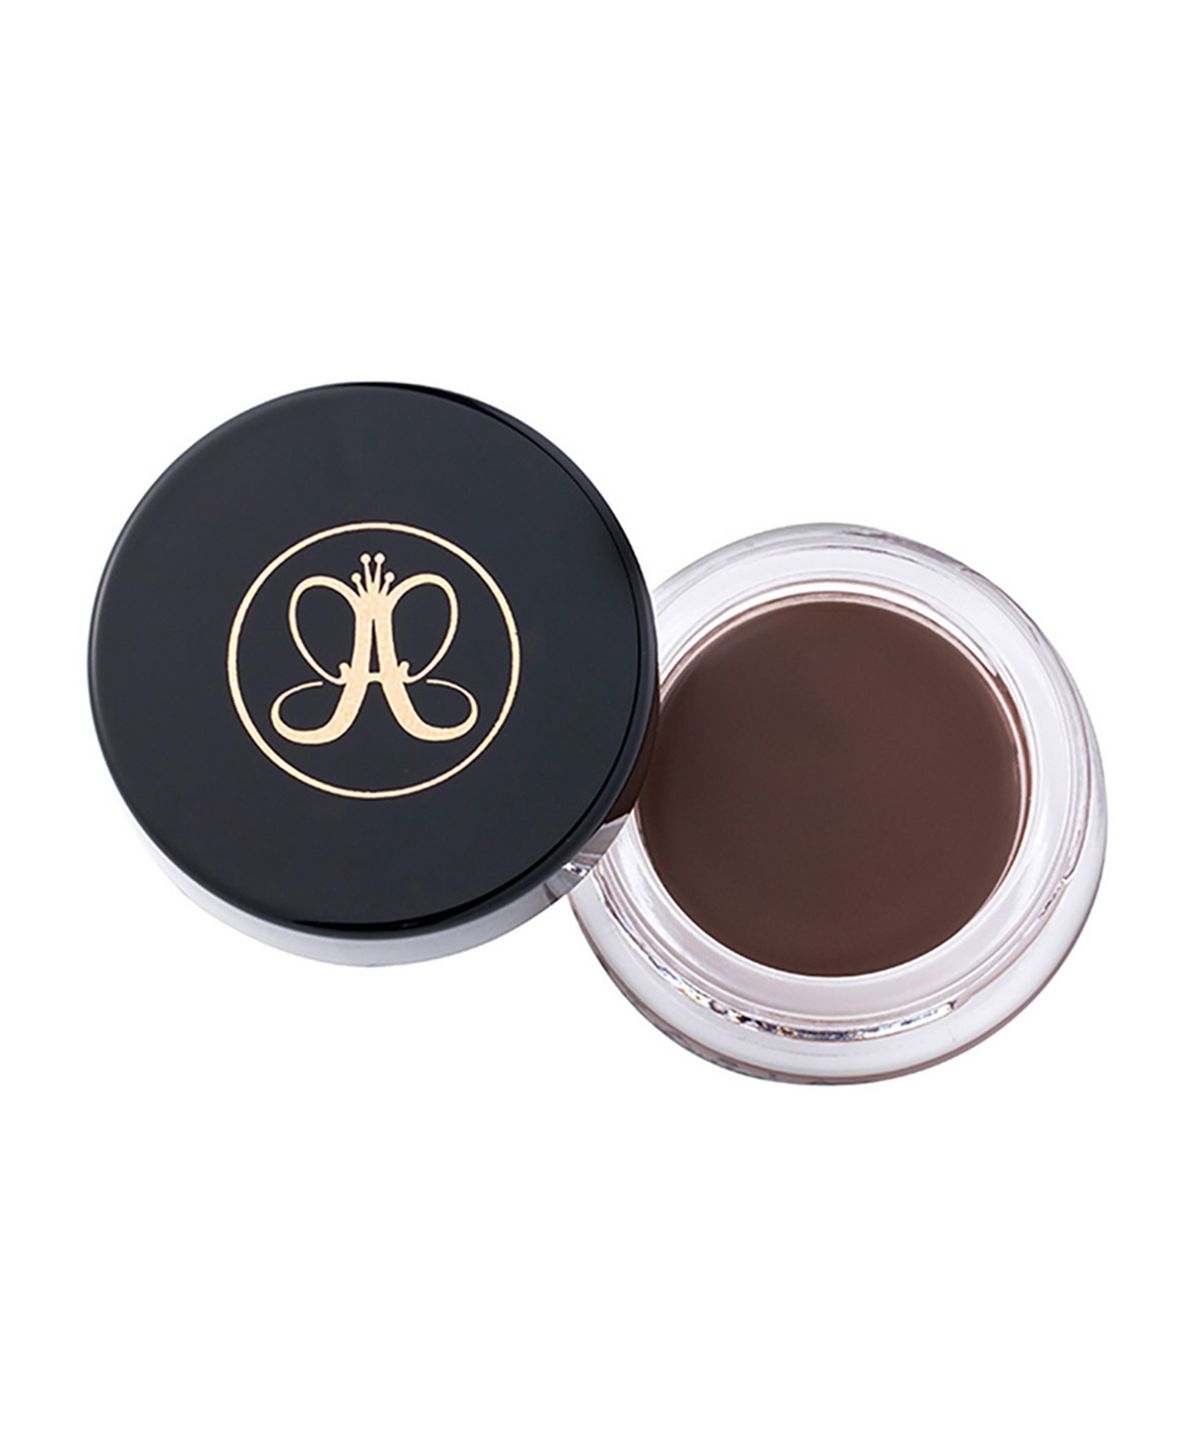 Anastasia Beverly Hills  Dipbrow Pomade  Cult Beauty-4875